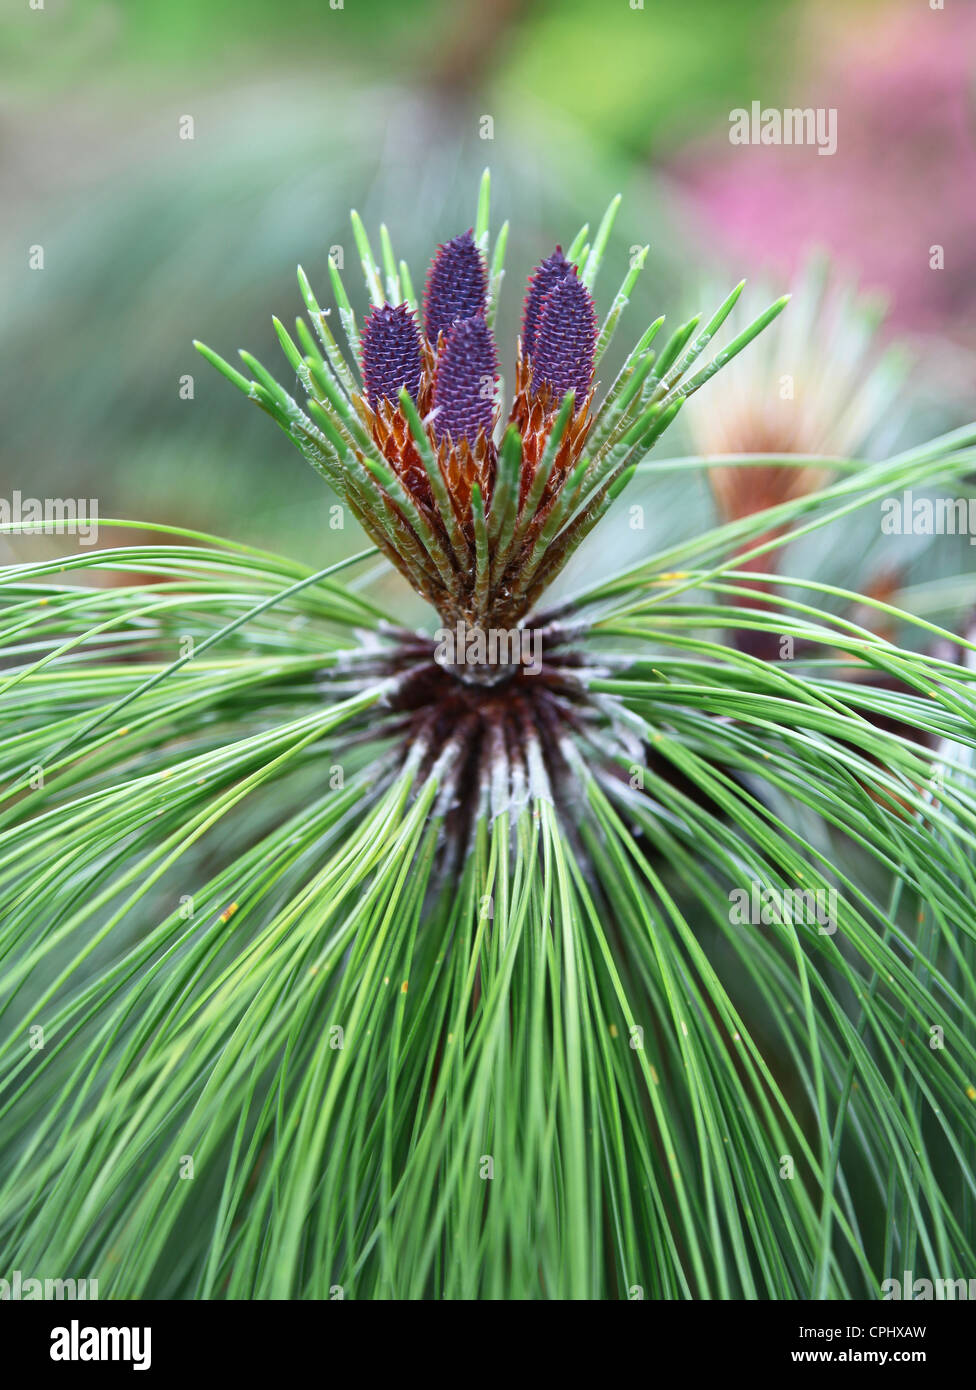 Pinus montezumae, known as the Montezuma Pine, is a species of conifer in the Pinaceae family - Stock Image